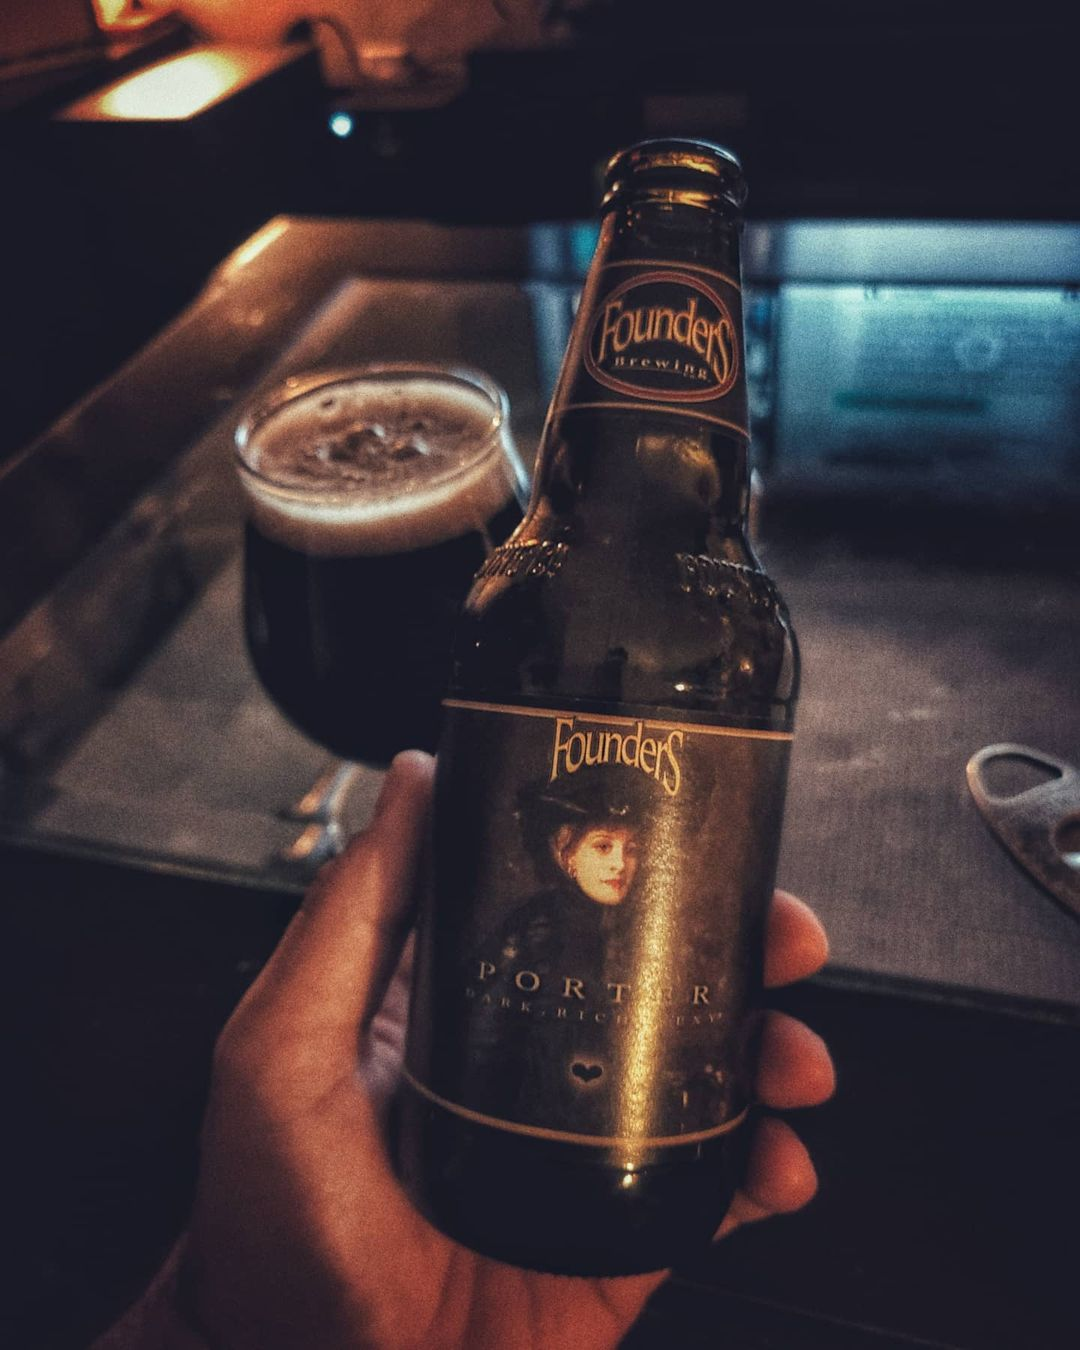 A hand holding a bottle of Porter in front of a cigar.